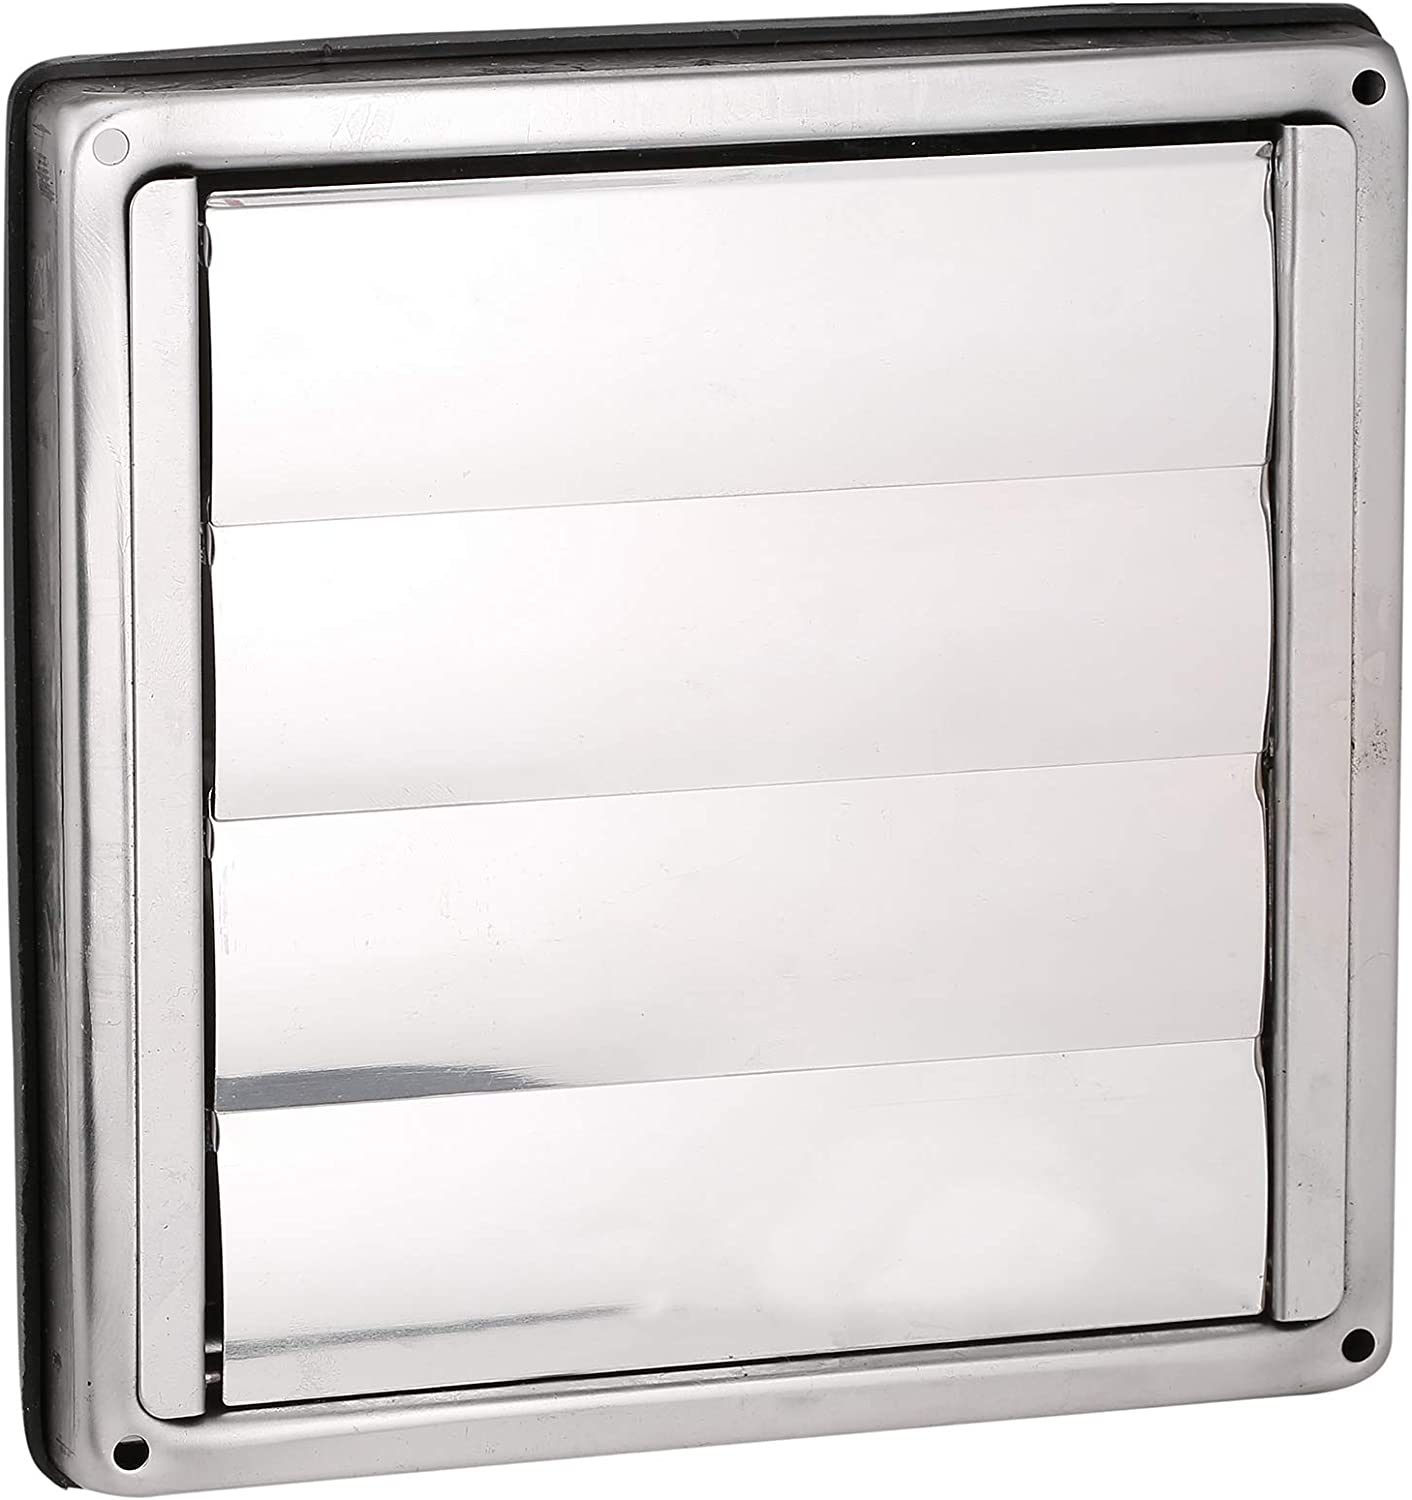 First4spares 6 150mm Stainless Steel Square External Wall Extractor Air Vent Grill Outlet With Gravity Flaps